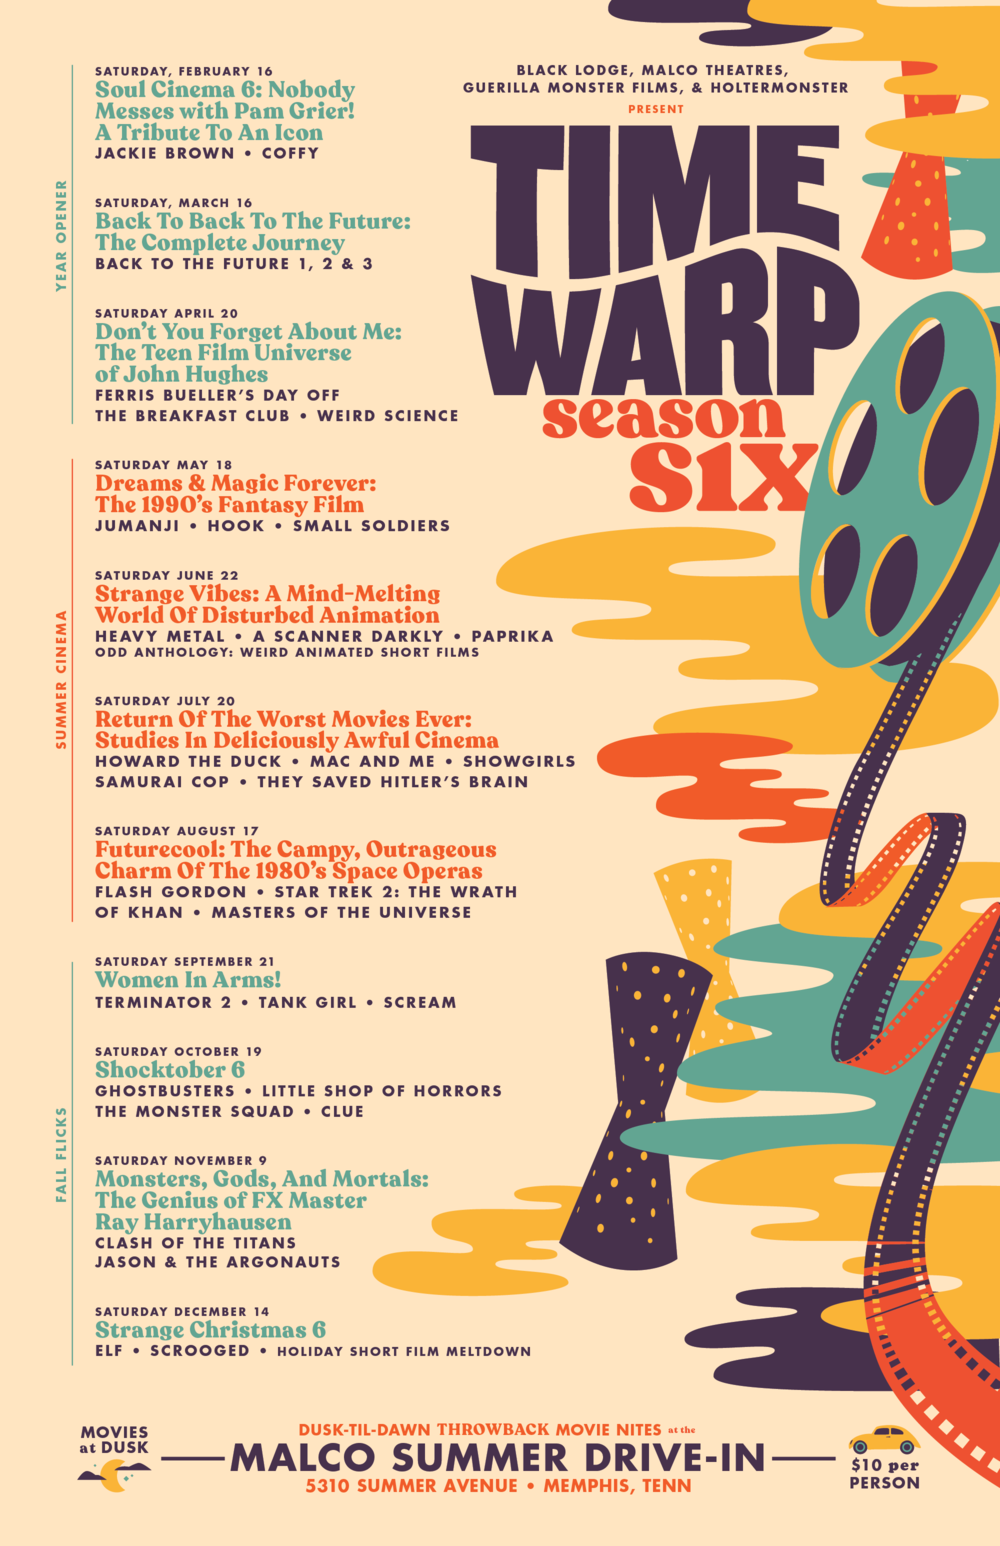 timewarp2019_full-schedule-web.png